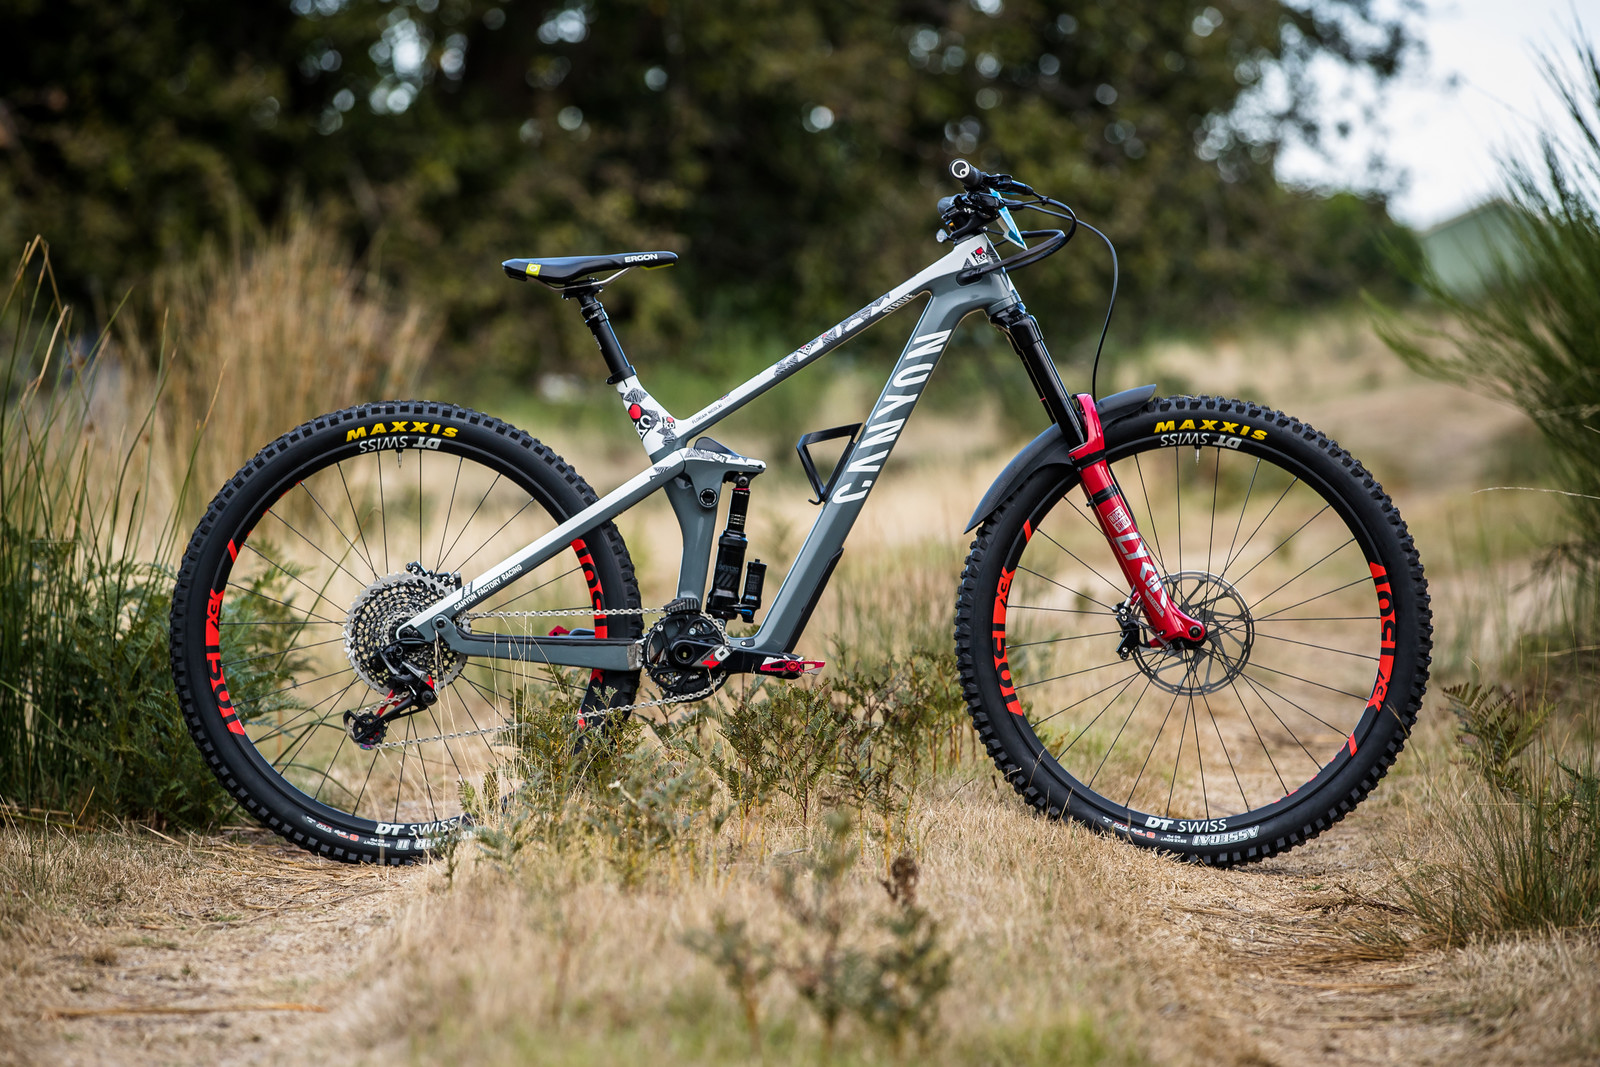 What's Stock, What's Not - Florian Nicolai's Canyon Strive 29 - What's Stock, What's Not - Tasmania Enduro World Series - Mountain Biking Pictures - Vital MTB